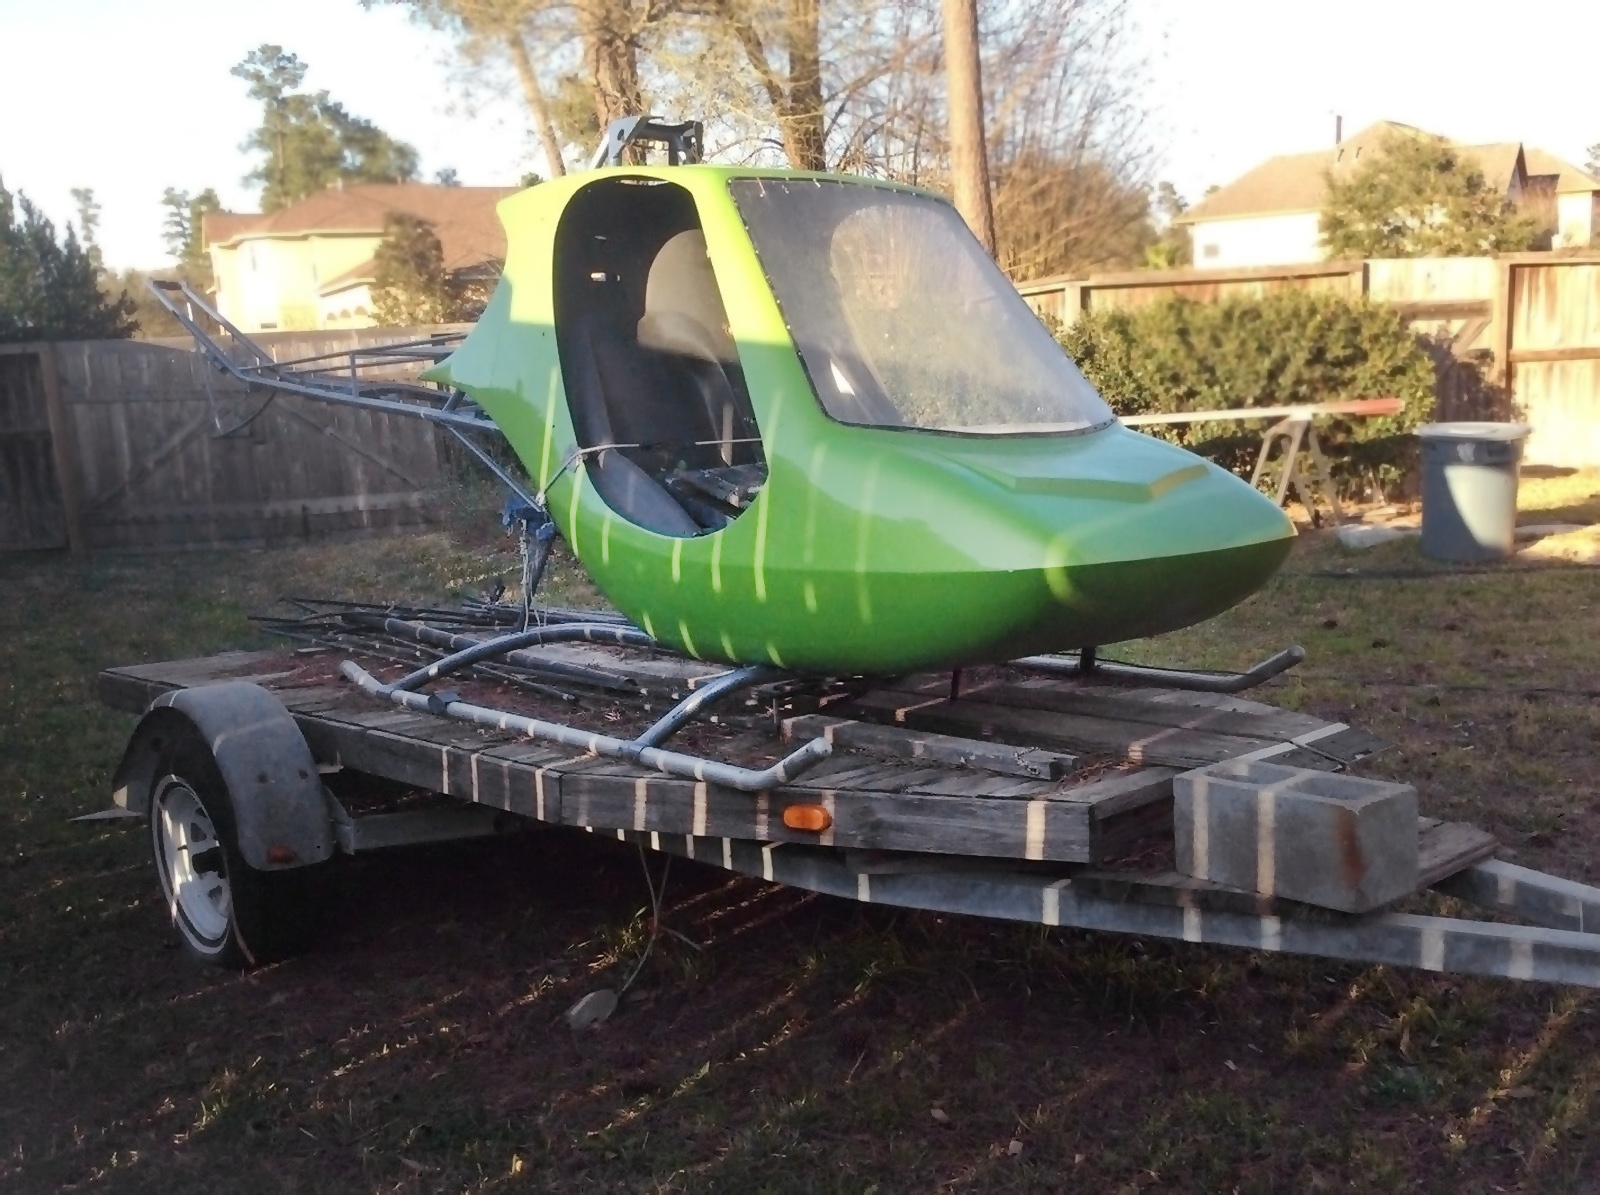 Kit Kopter: 1976 RotorWay Scorpion Too